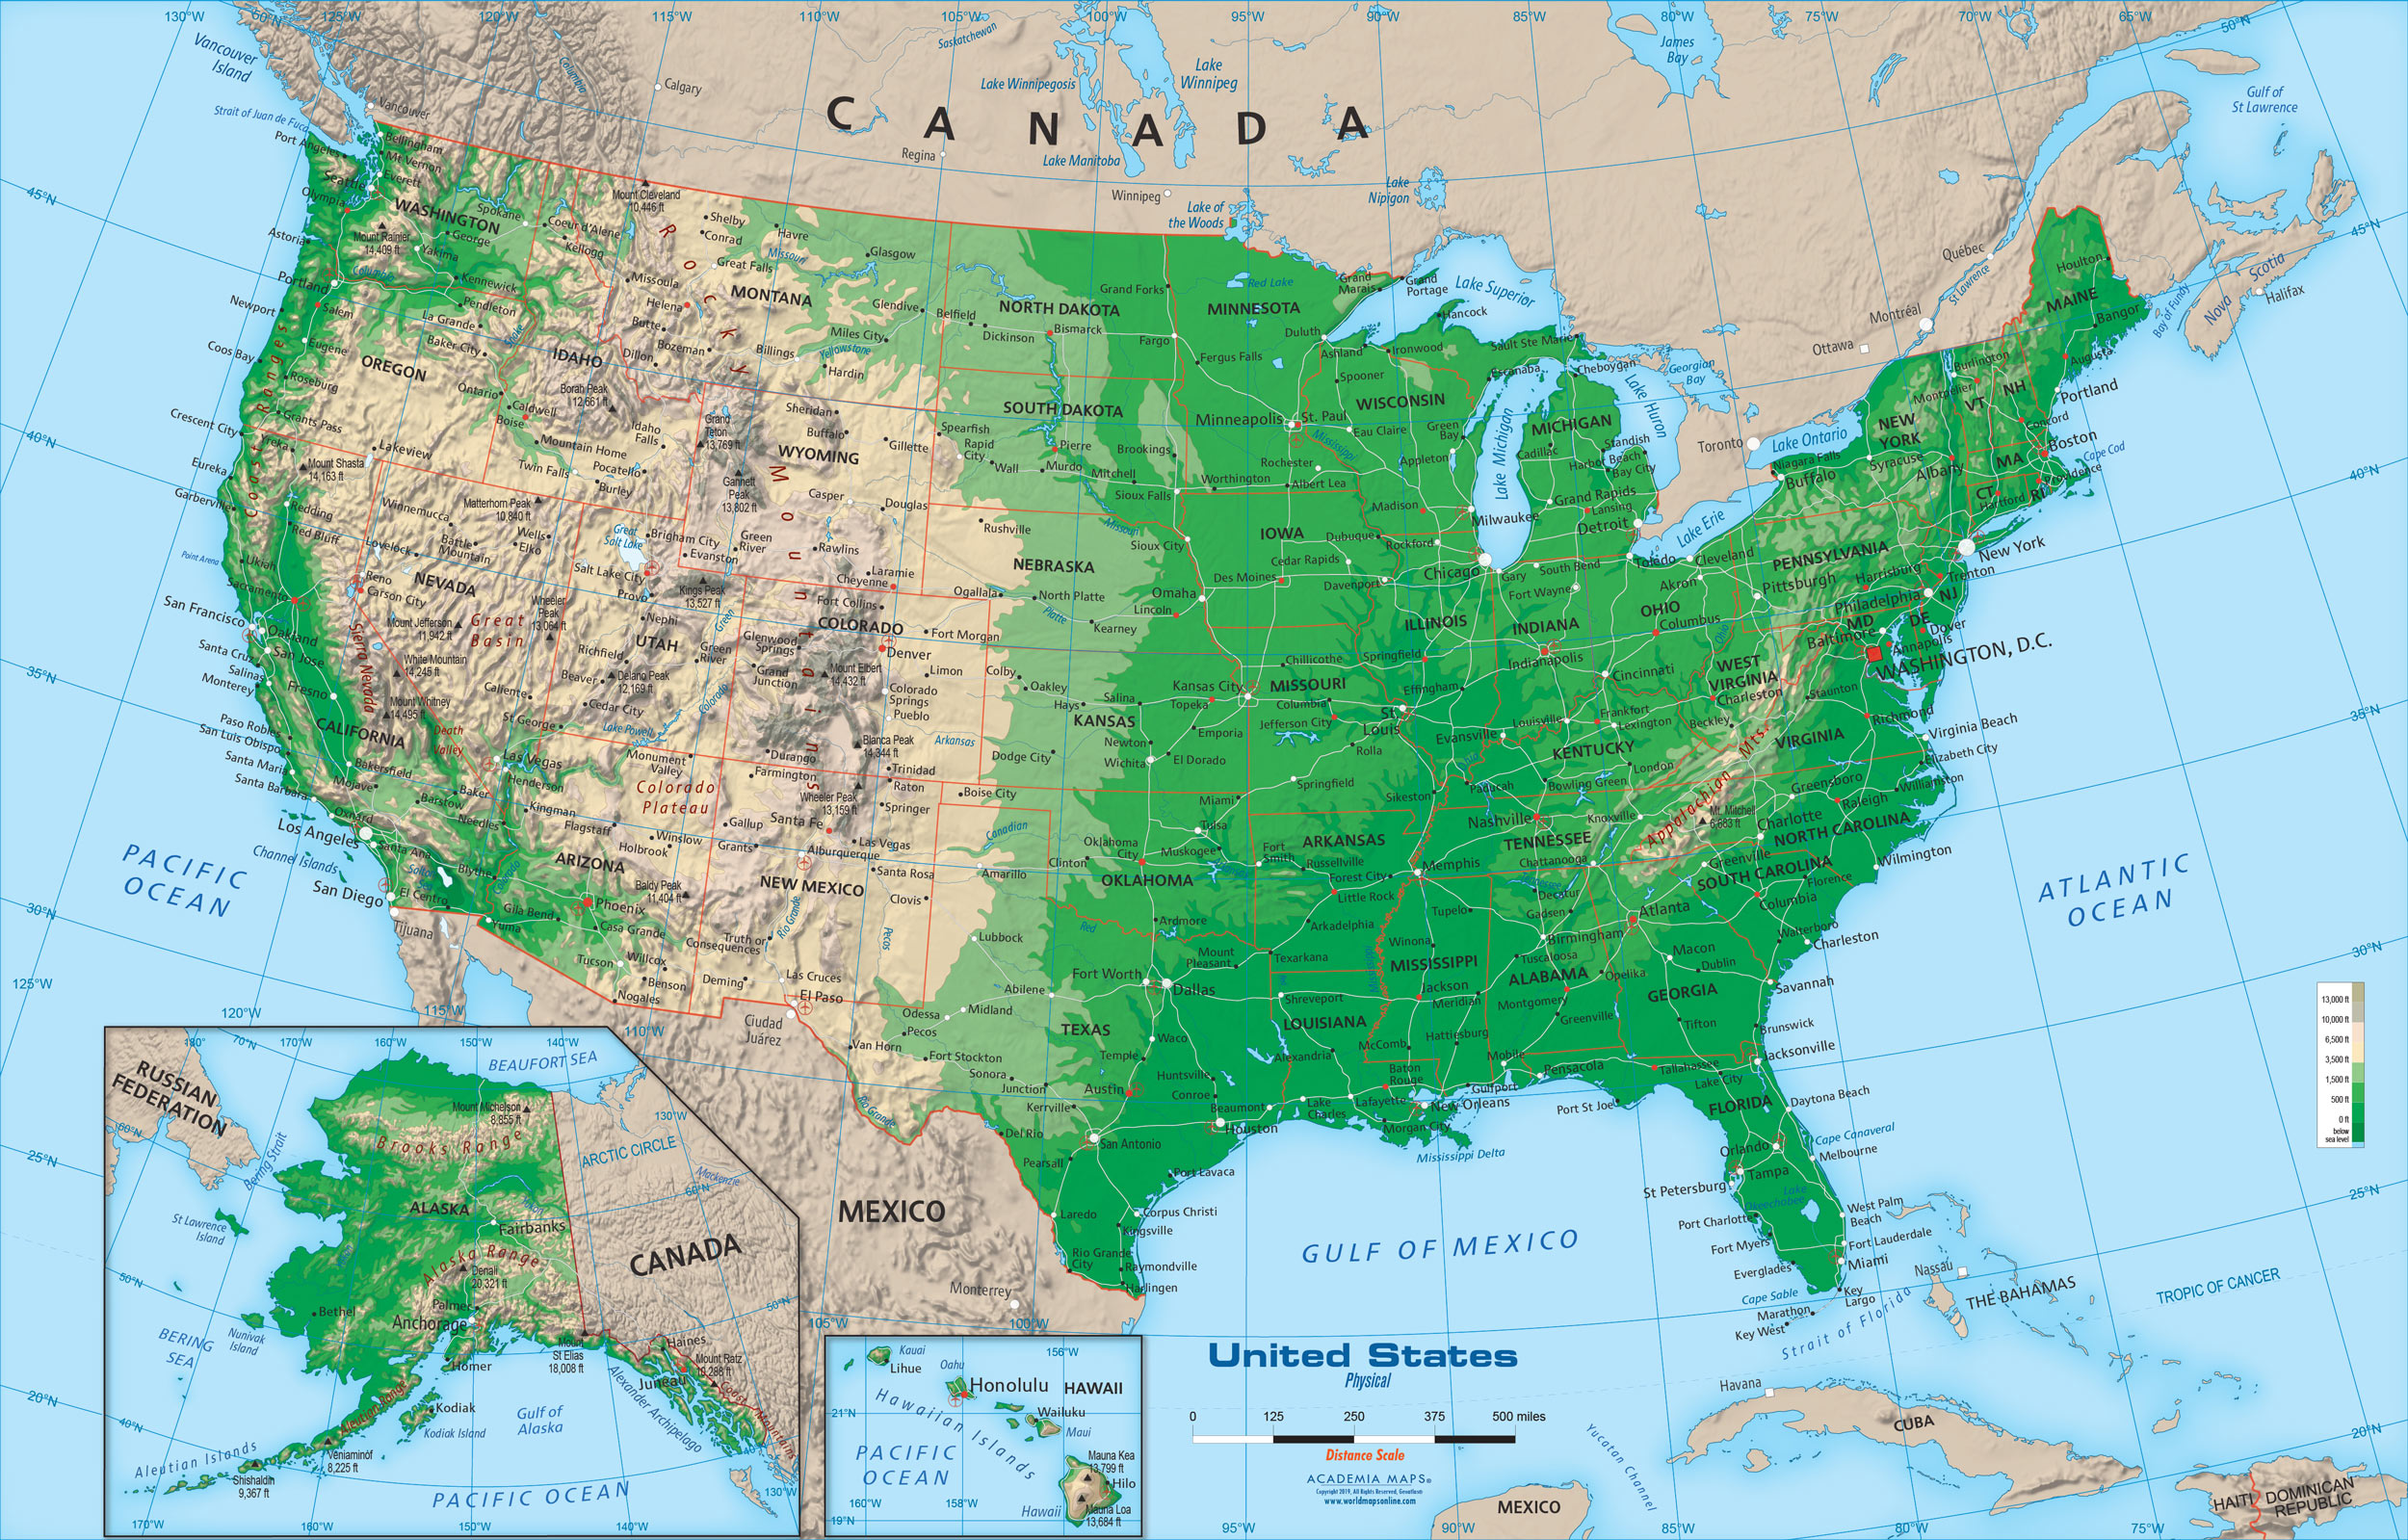 Topographical Map Of The Us United States Physical Map Wall Mural from Academia